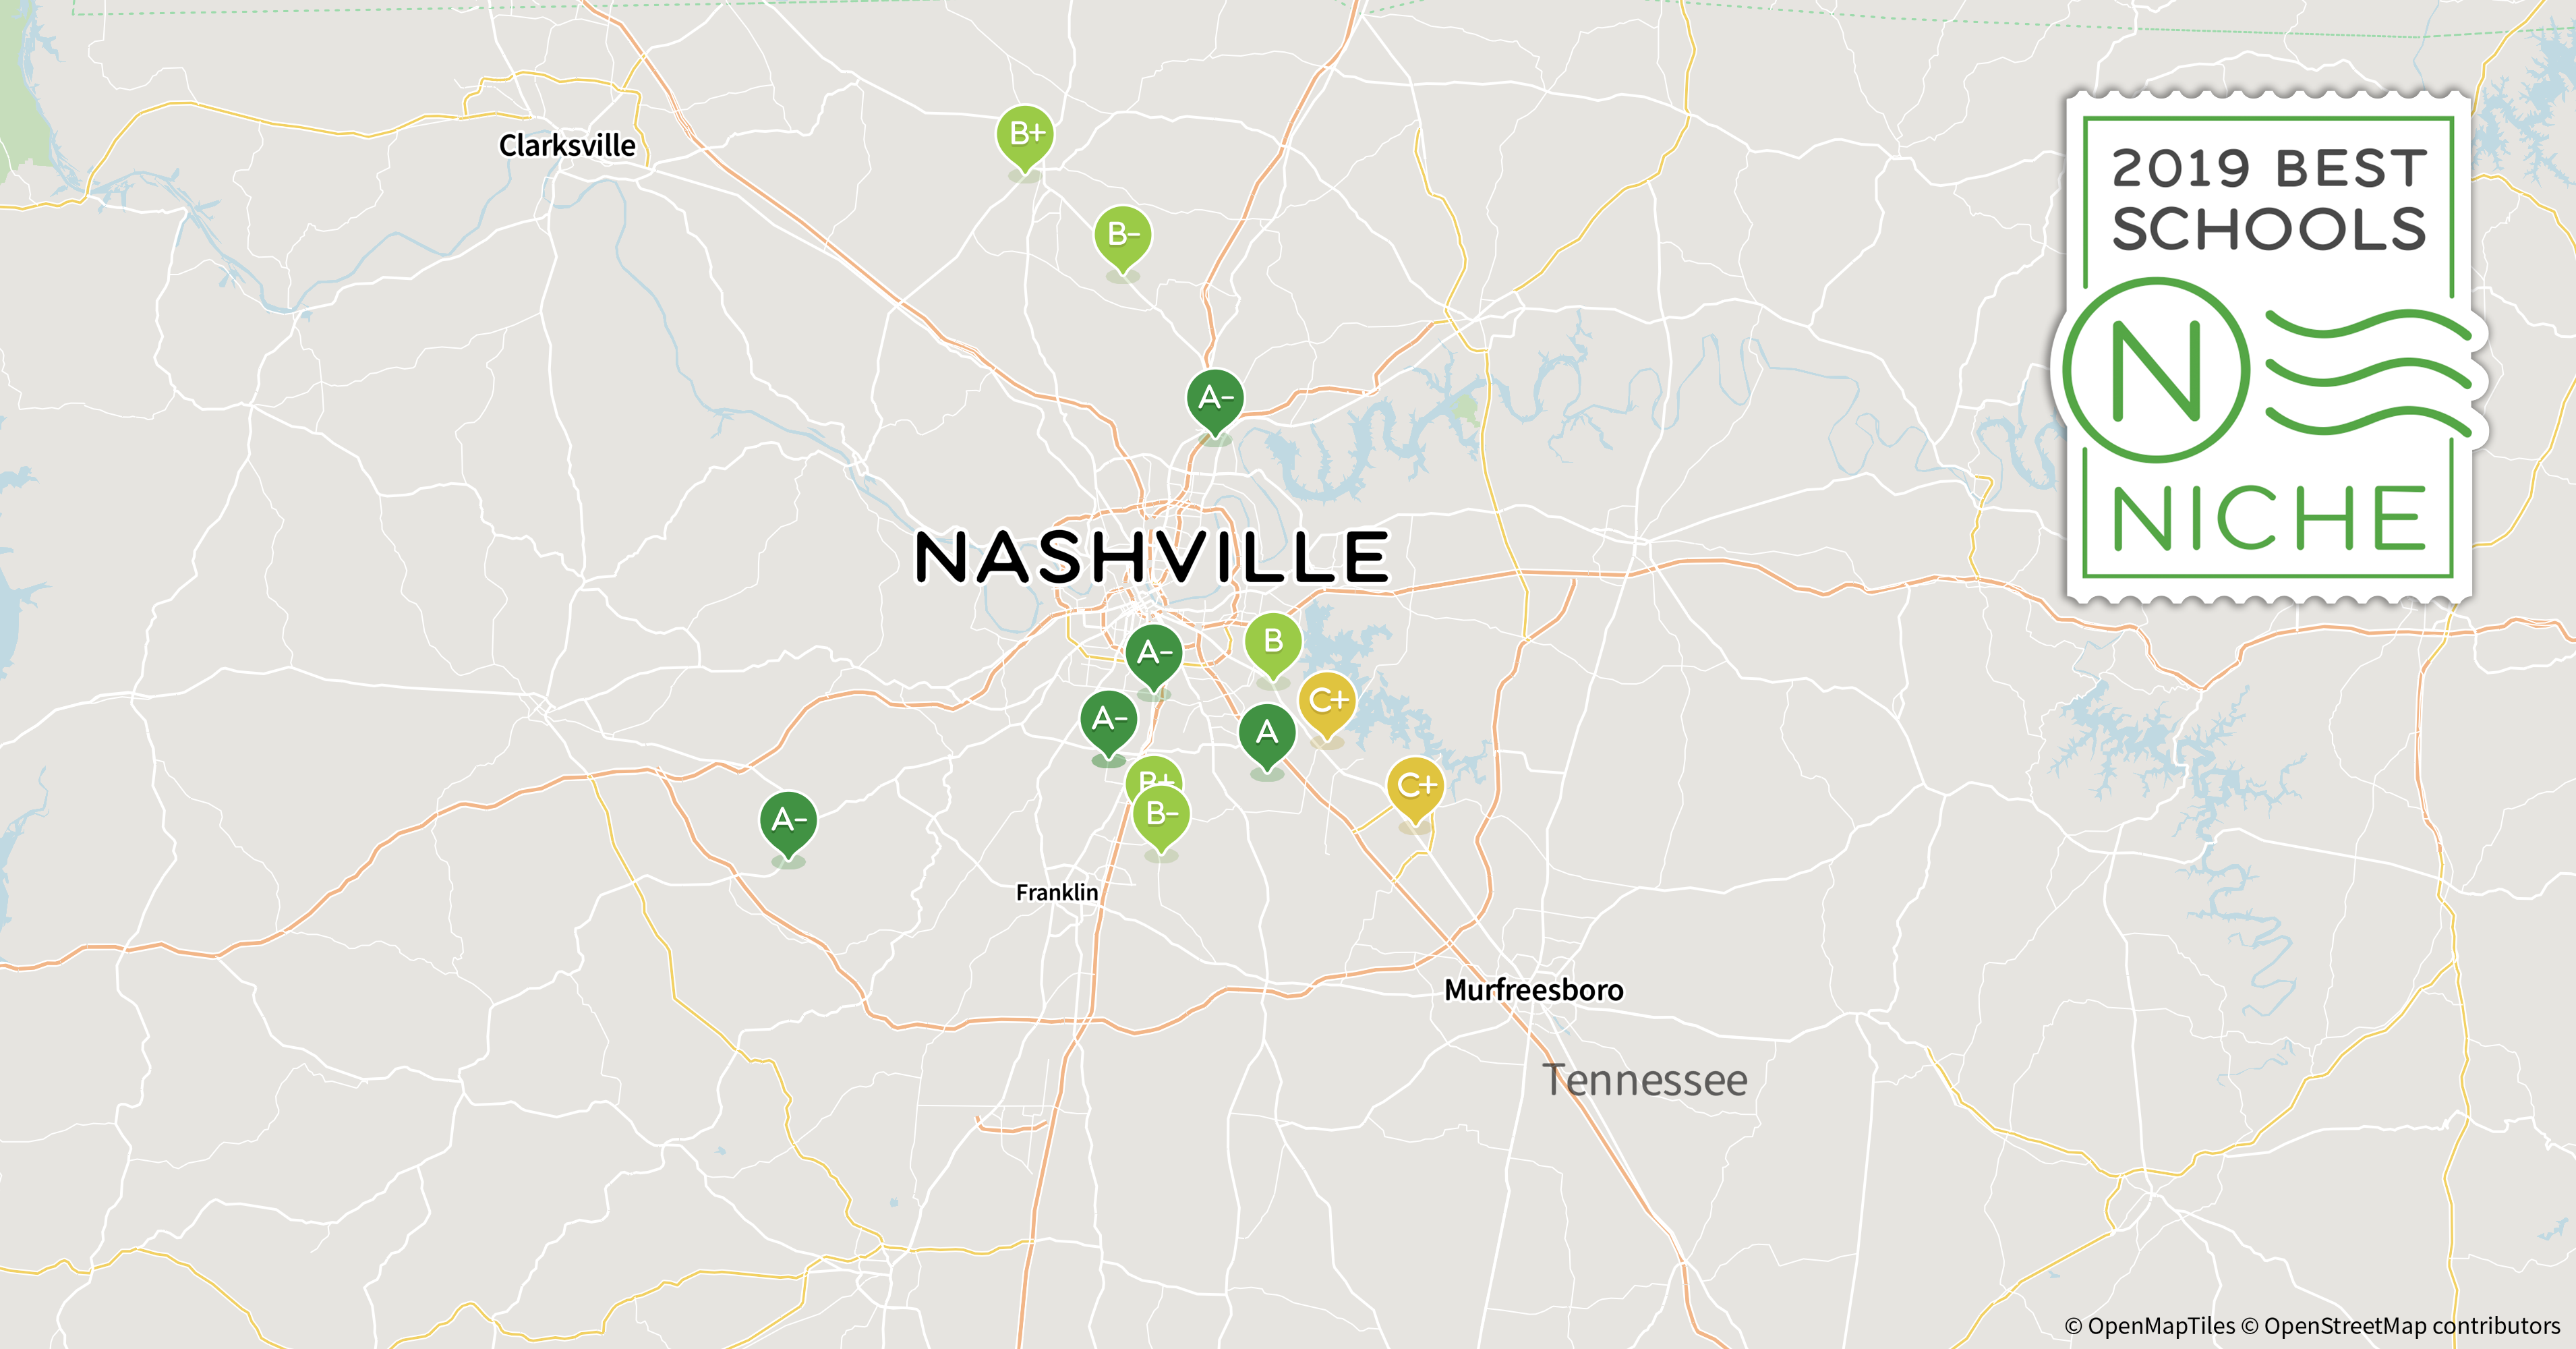 2019 Best School Districts in the Nashville Area - Niche